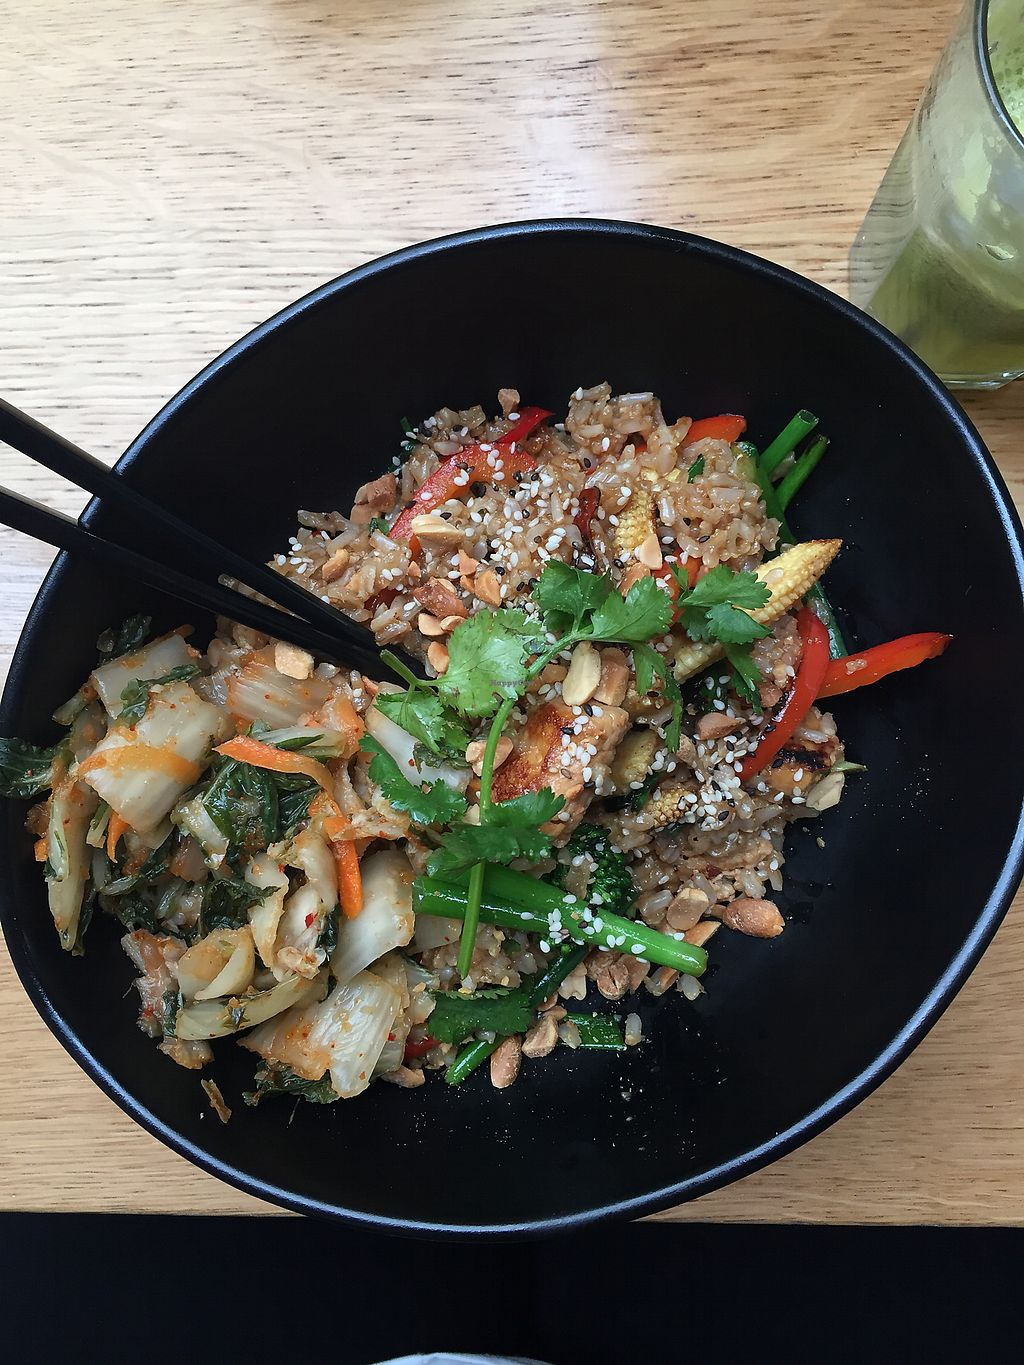 """Photo of Mildred's  by <a href=""""/members/profile/lmd06"""">lmd06</a> <br/>Stir fried vegetables <br/> September 6, 2017  - <a href='/contact/abuse/image/676/301491'>Report</a>"""